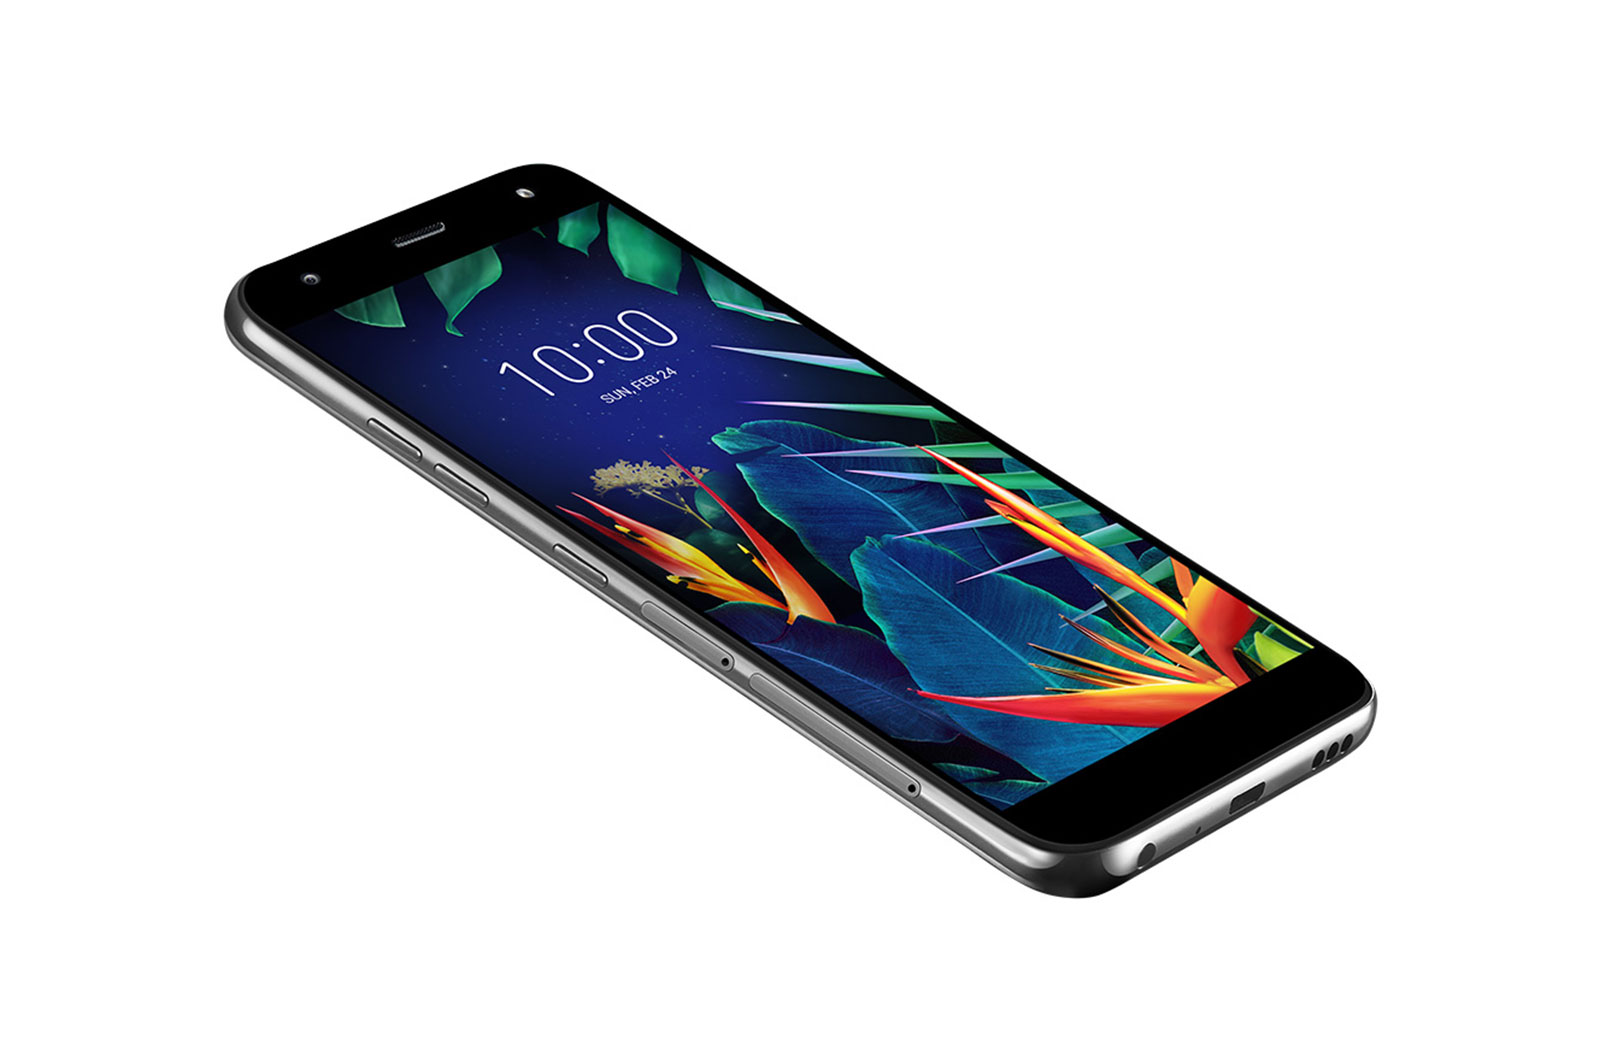 LG K40 Smartphone Review: A cheery and affordable handset